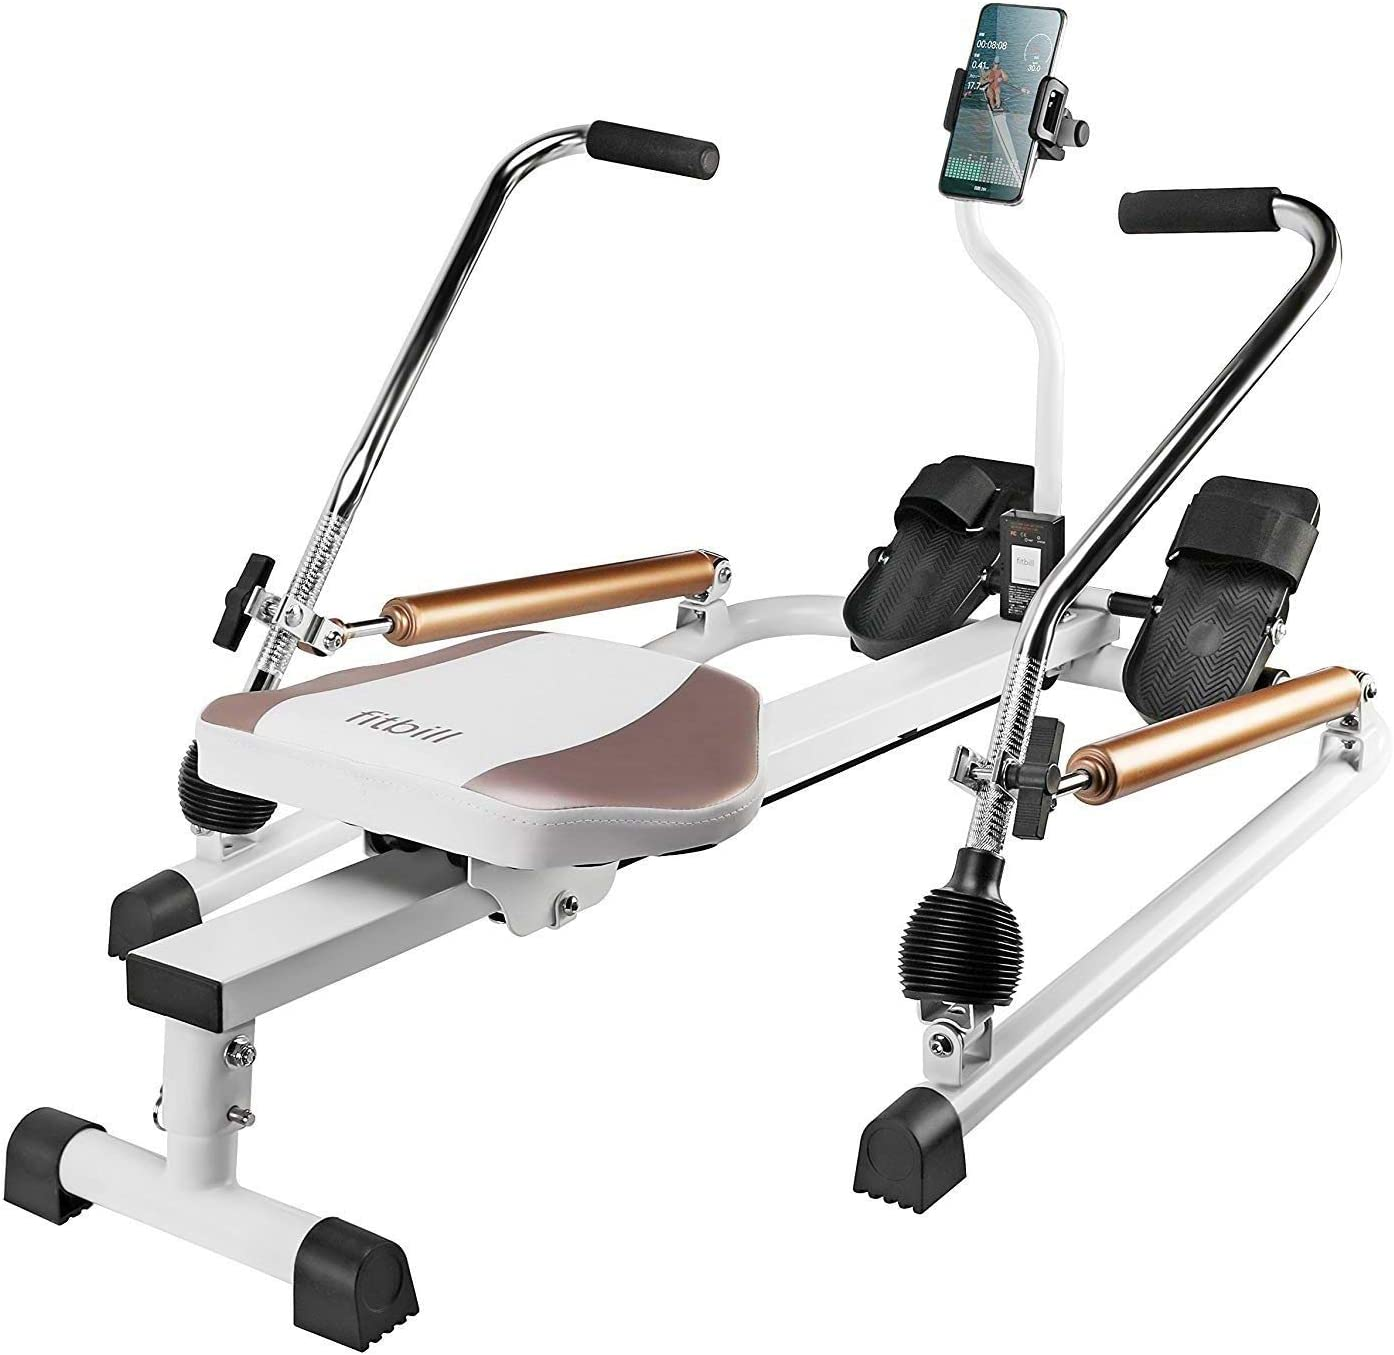 Fitbill f.Row Smart Rowing Machine Review